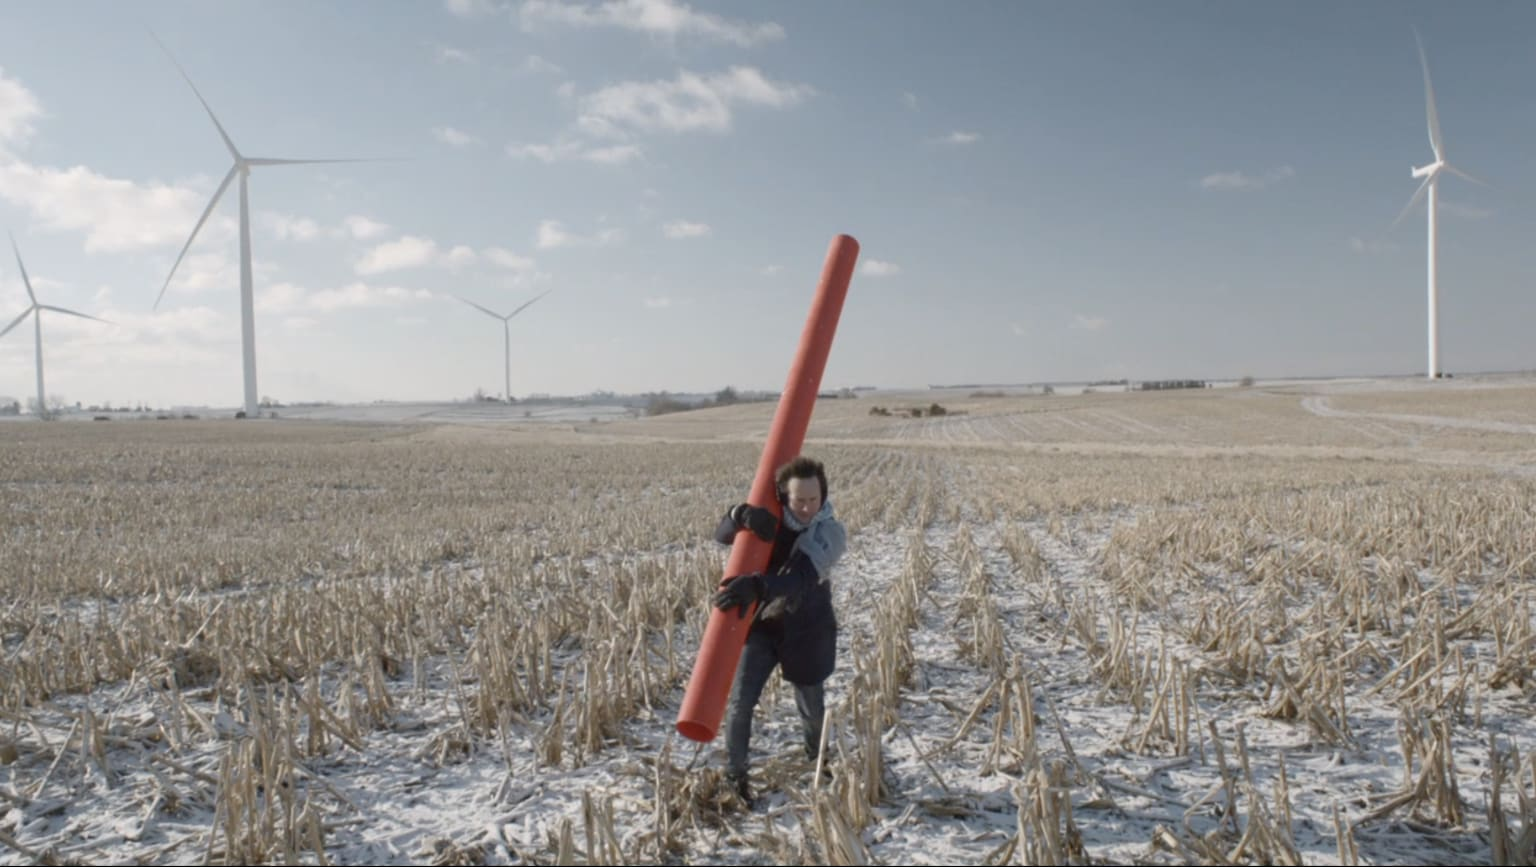 Siemens: The Sounds of Wind